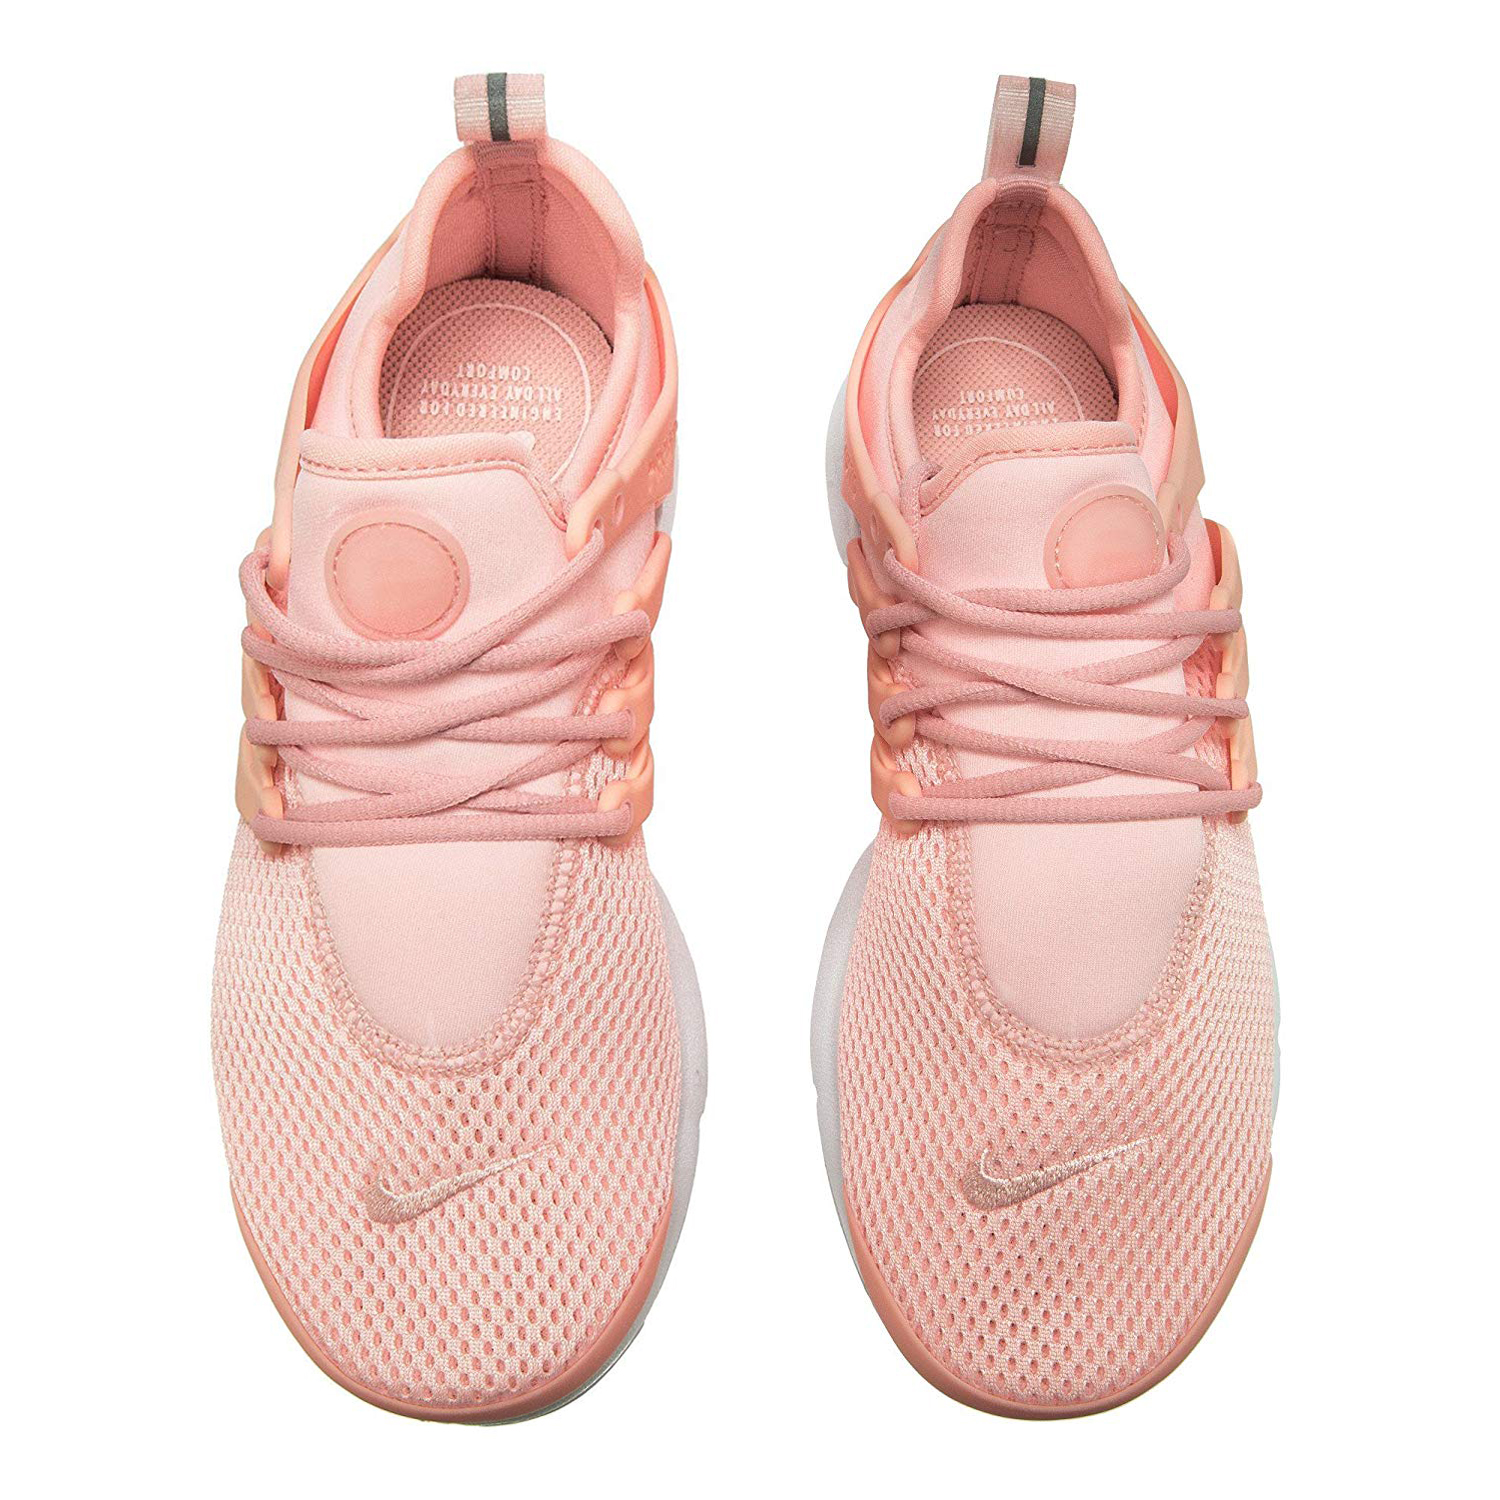 separation shoes ff355 ab5d8 Nike Womens Air Presto Running Shoes